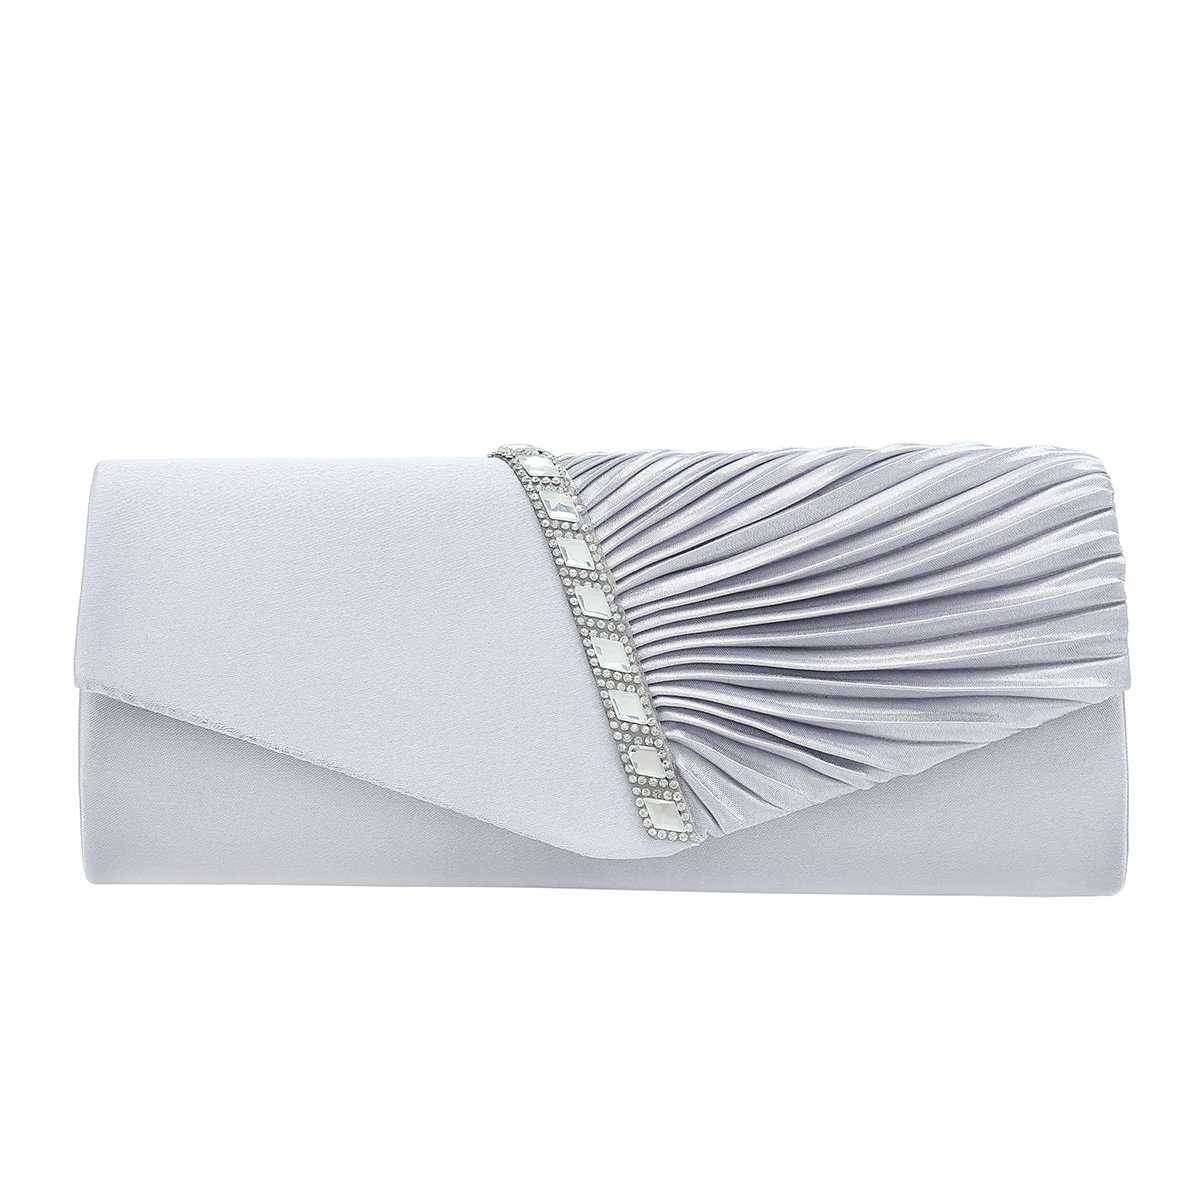 Charming Tailor Evening Handbag Crystal Embellished and Pleated Satin Clutch (Silver)